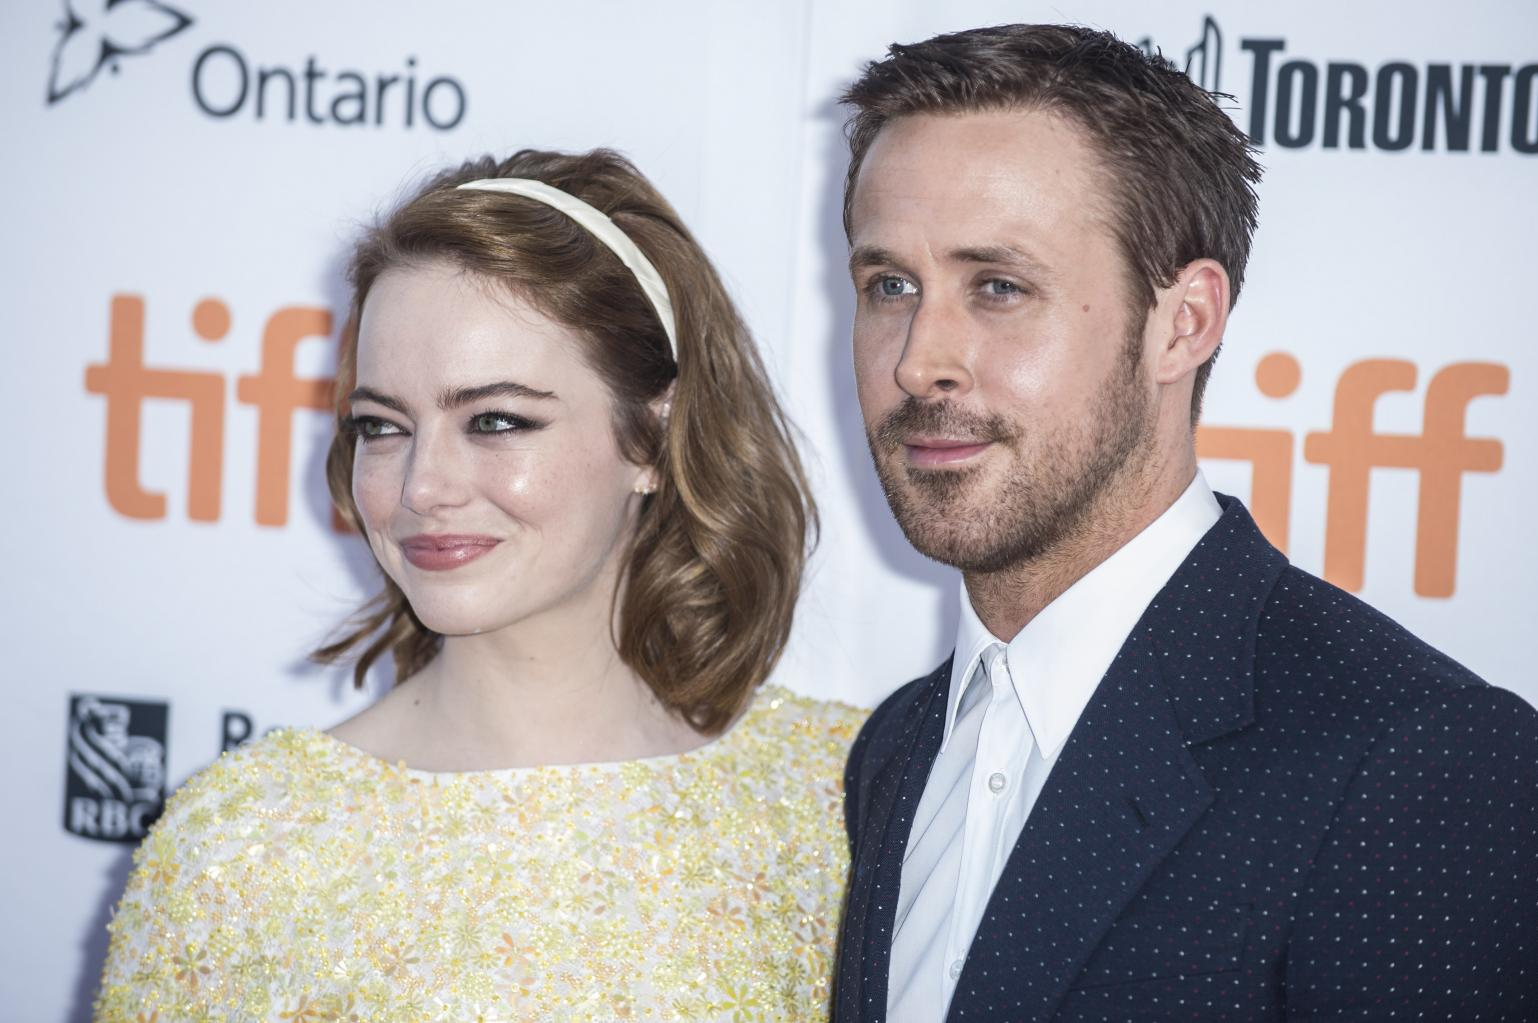 Listen To Ryan Gosling And Emma Stone's Gorgeous 'La La Land' Duet